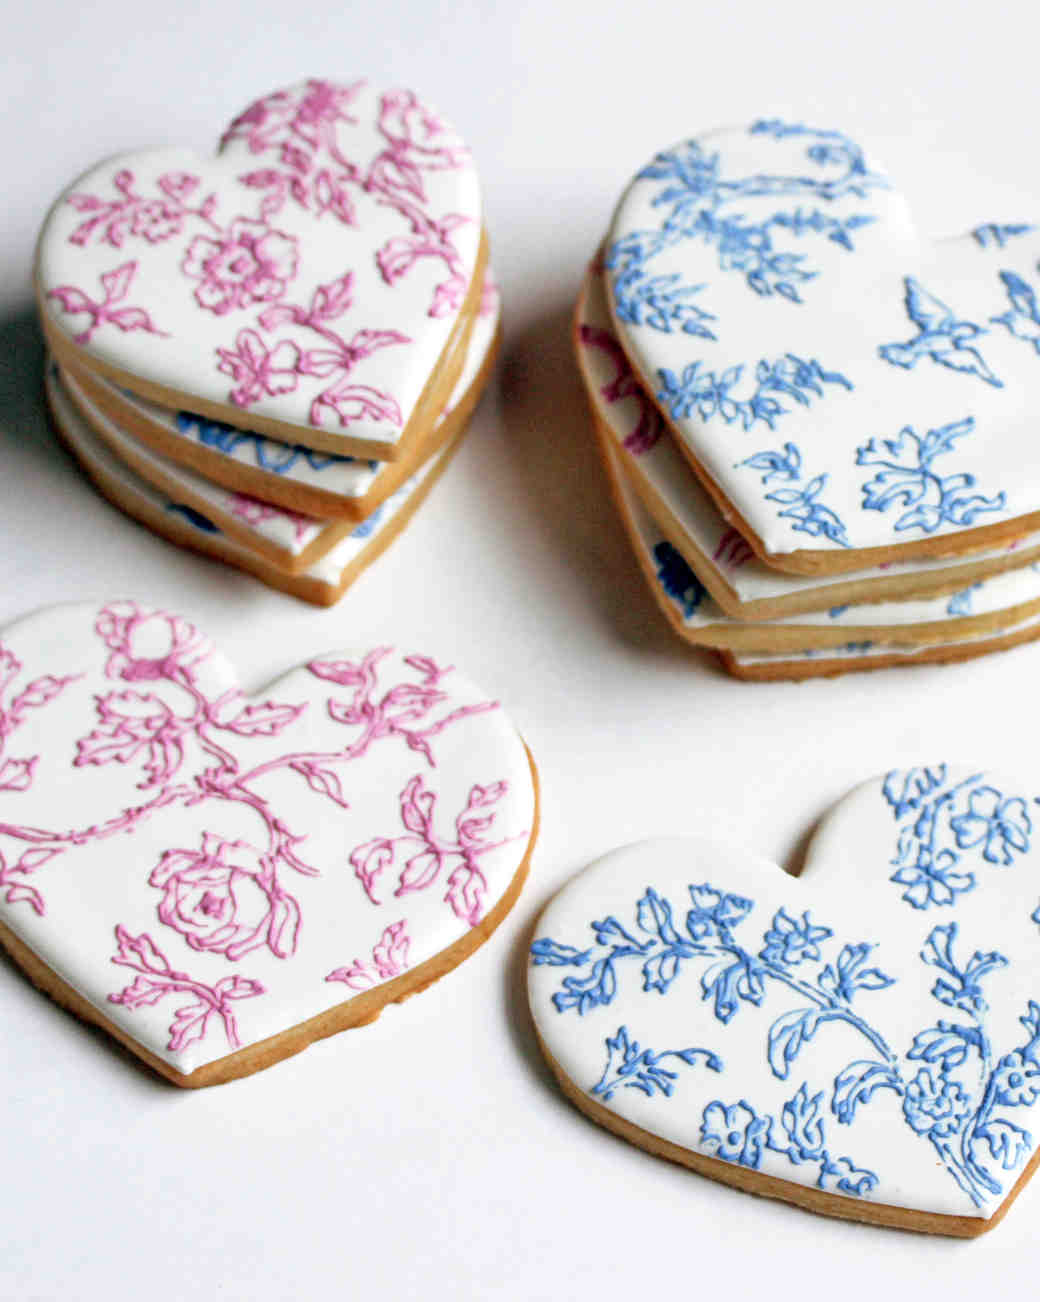 learn-the-lingo-frosting-royal-icing-baked-ideas-0814.jpg